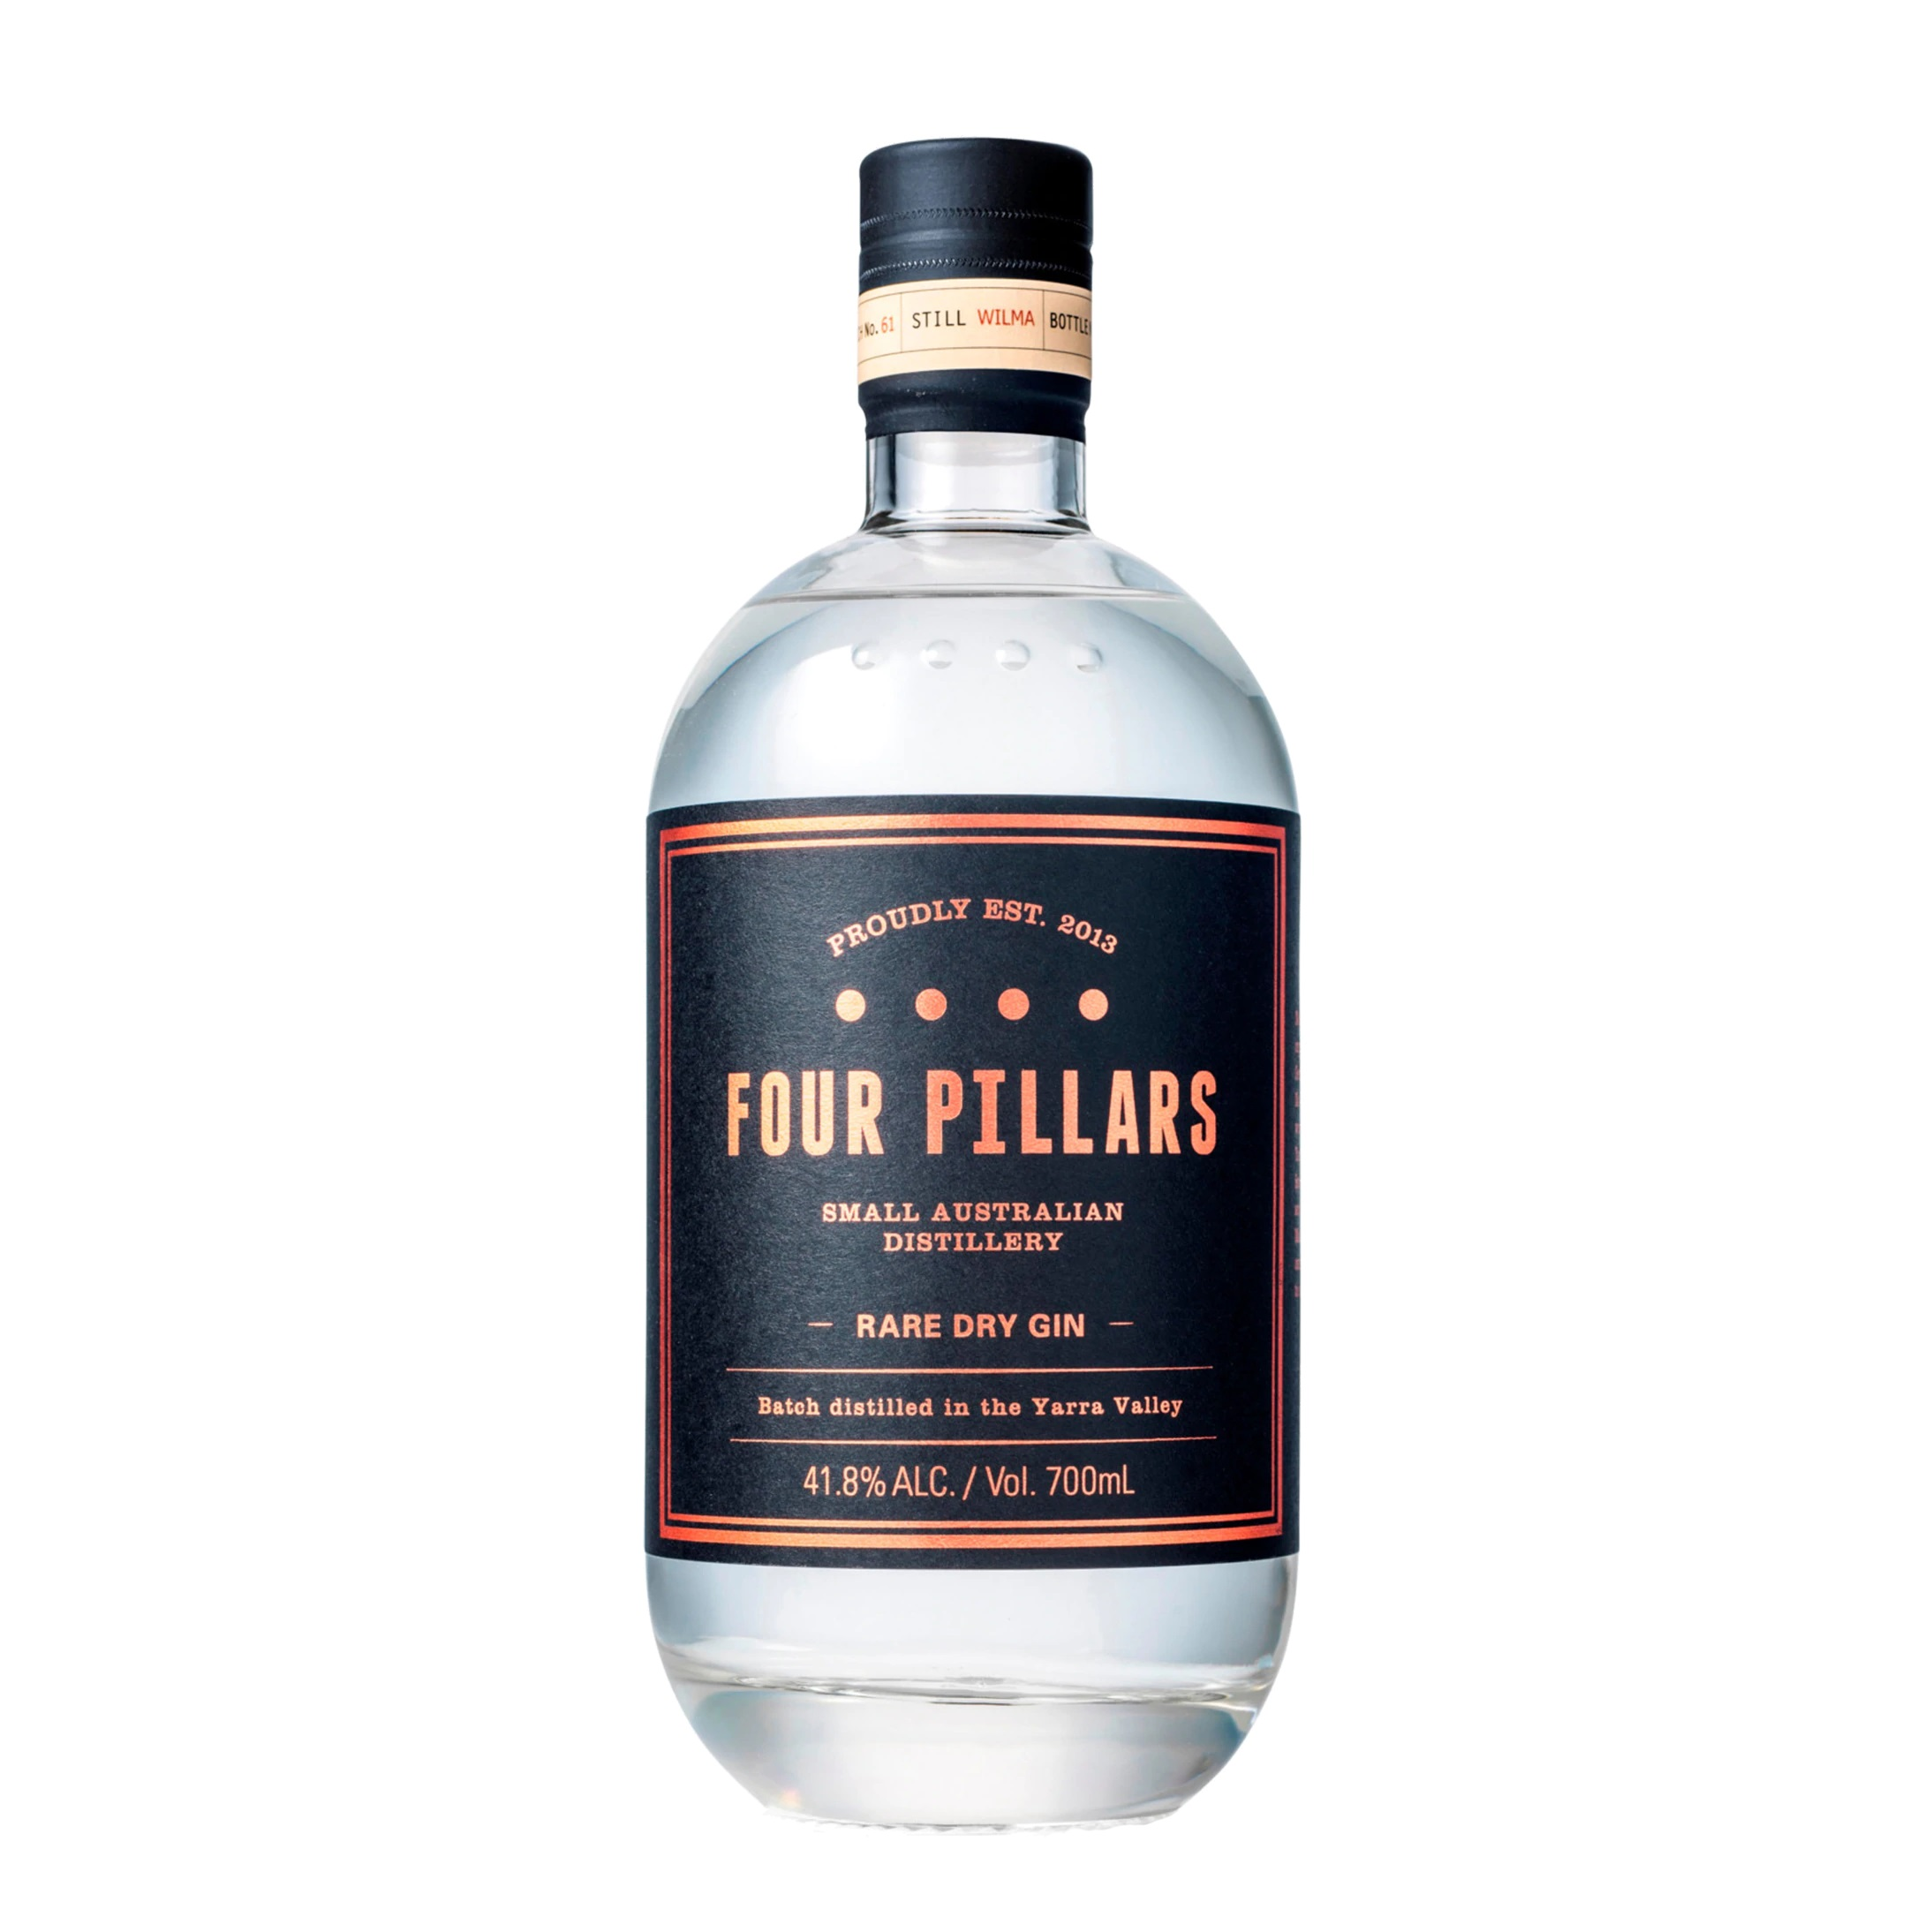 FOUR PILLARS RARE DRY GIN 700ML AWARD WINNING